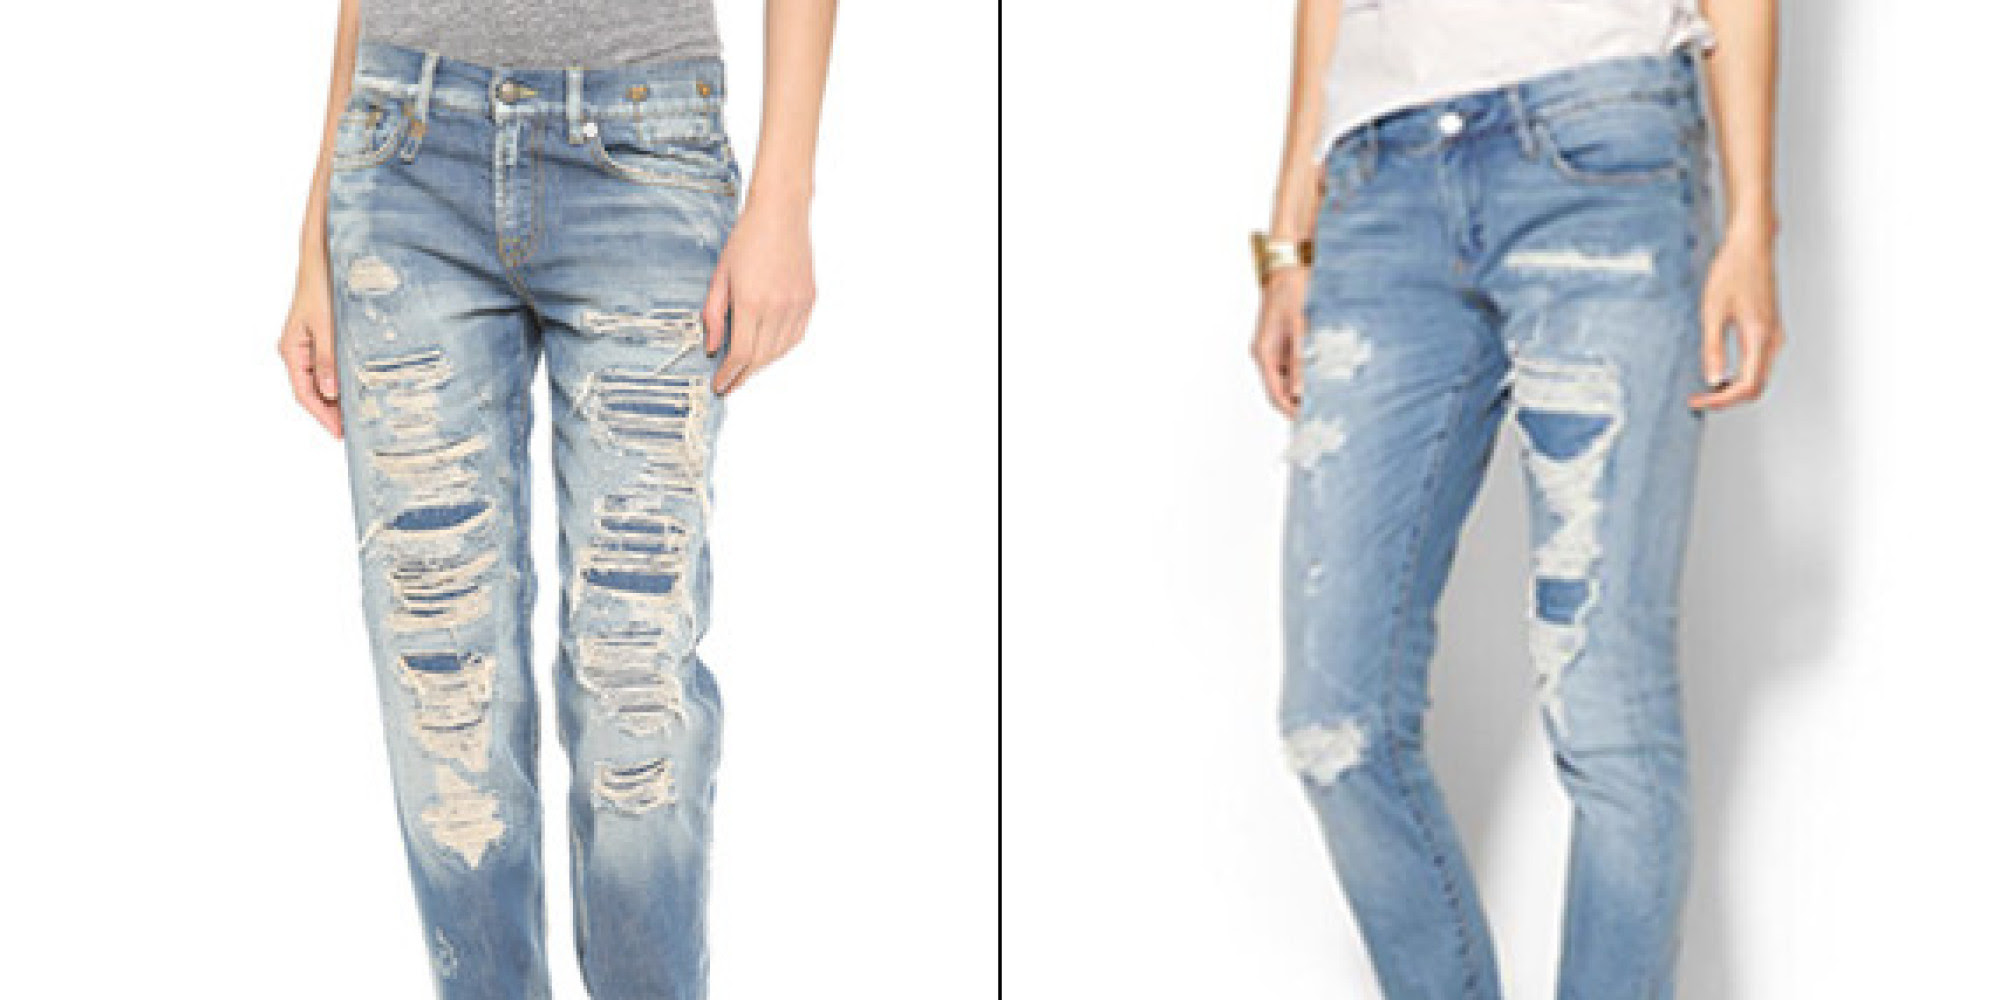 14f5f745eabfd9 Related Images with Crysp Denim Pacific Stone Wash Ripped Jeans.  RIPPEDJEANSFPfacebook.jpg